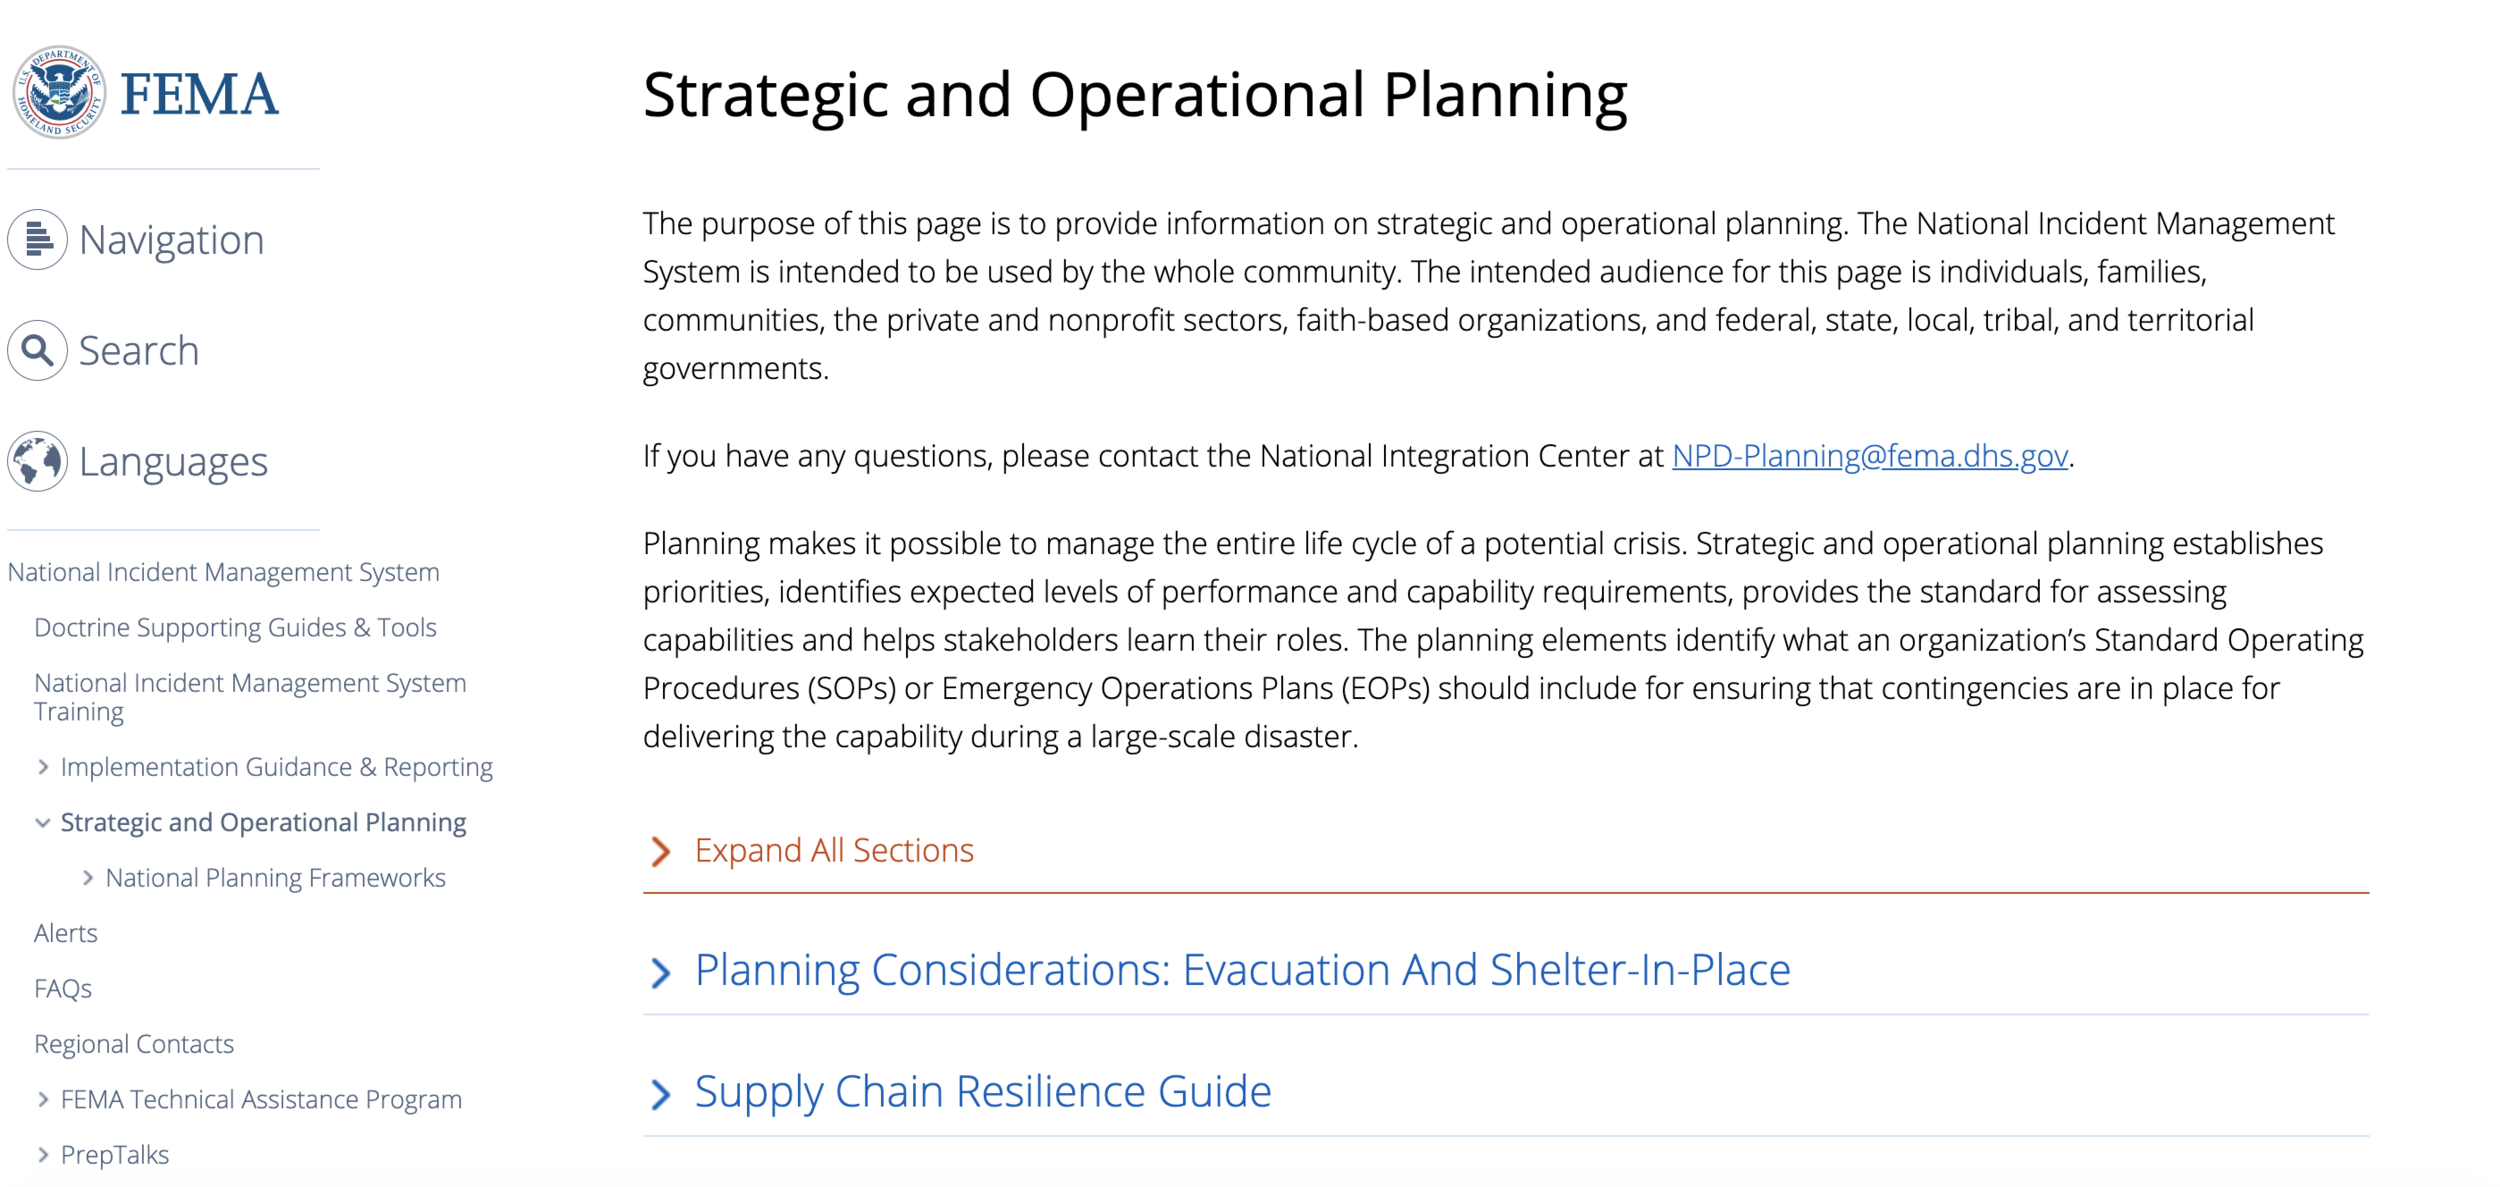 FEMA Strategic & Operational Planning Guide